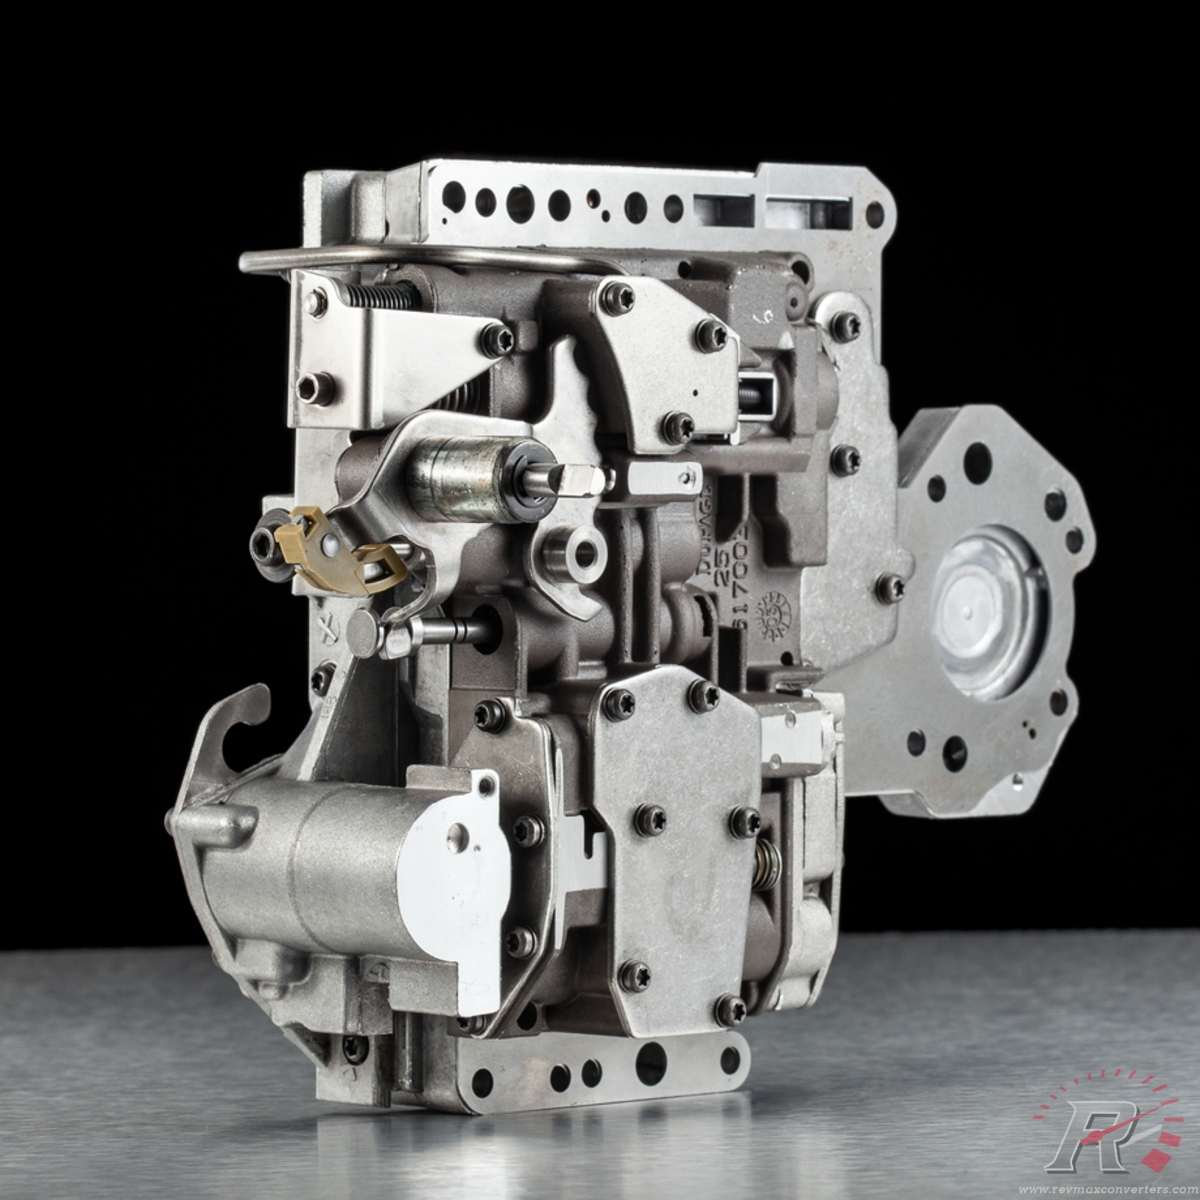 48re towing valve body 2003 2007 revmax converters 4R70W Valve Body Exploded-View Hipster Valve Body